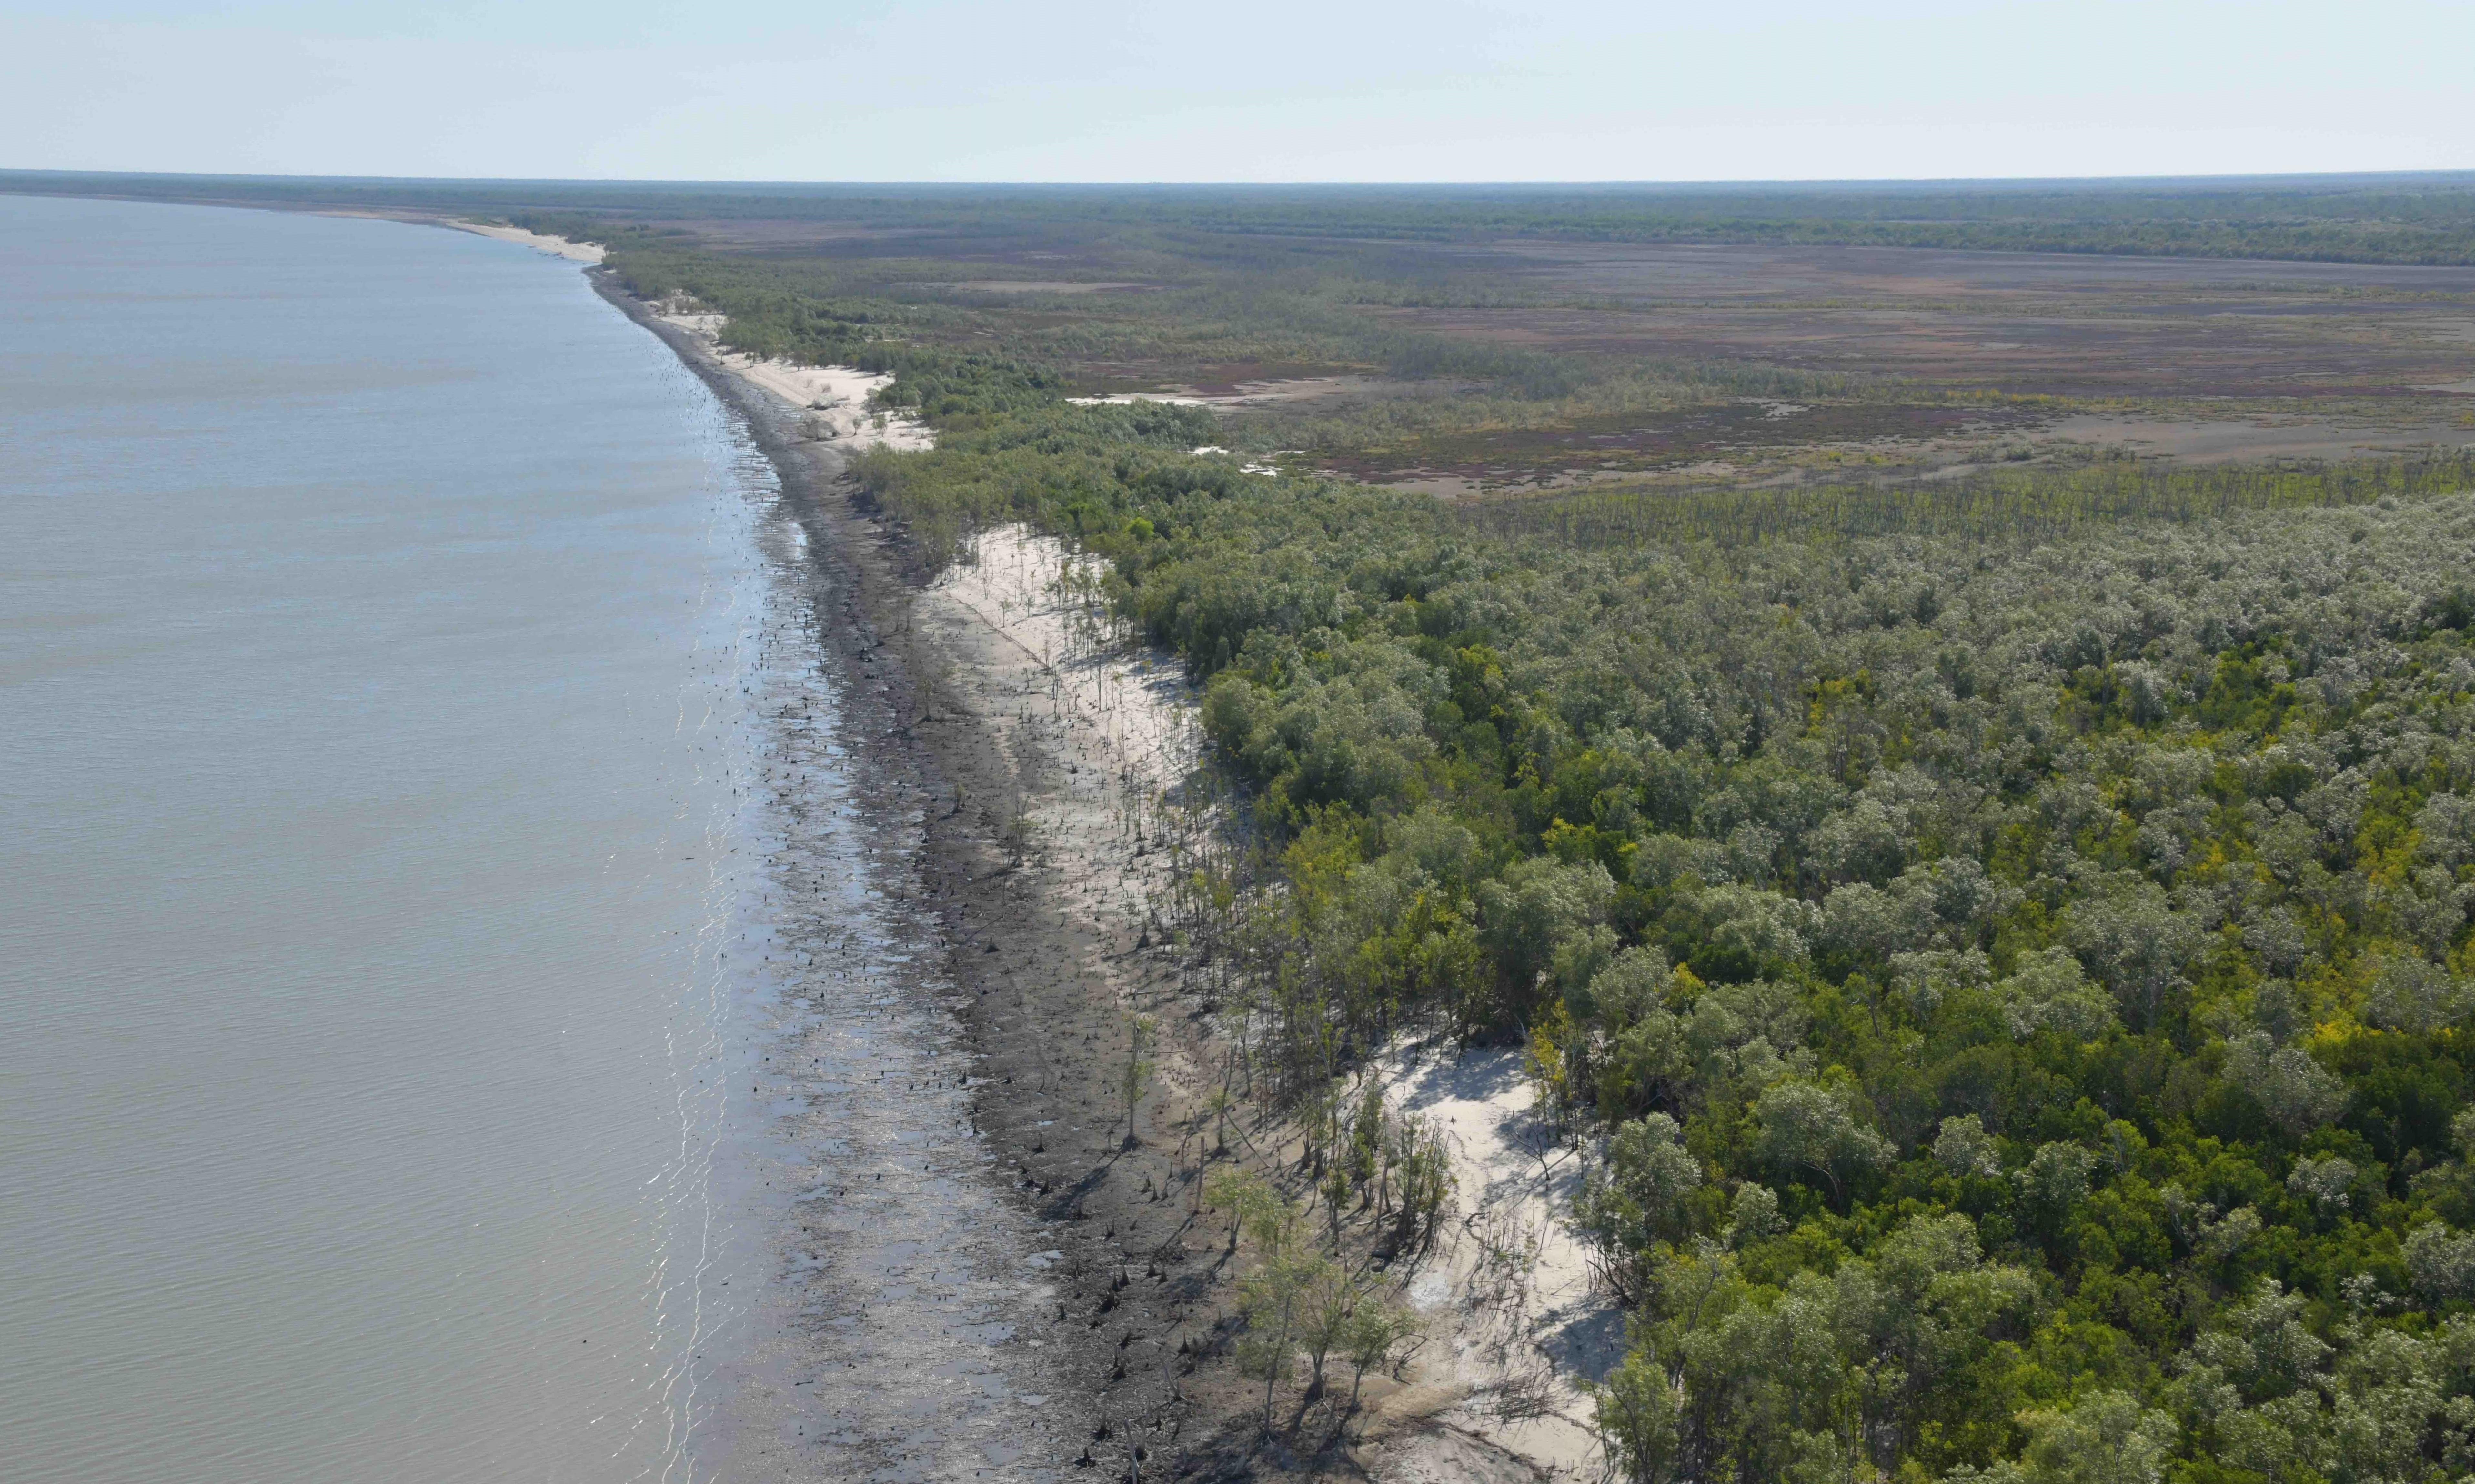 Shocked scientists find 400km of dead and damaged mangroves in Gulf of Carpentaria